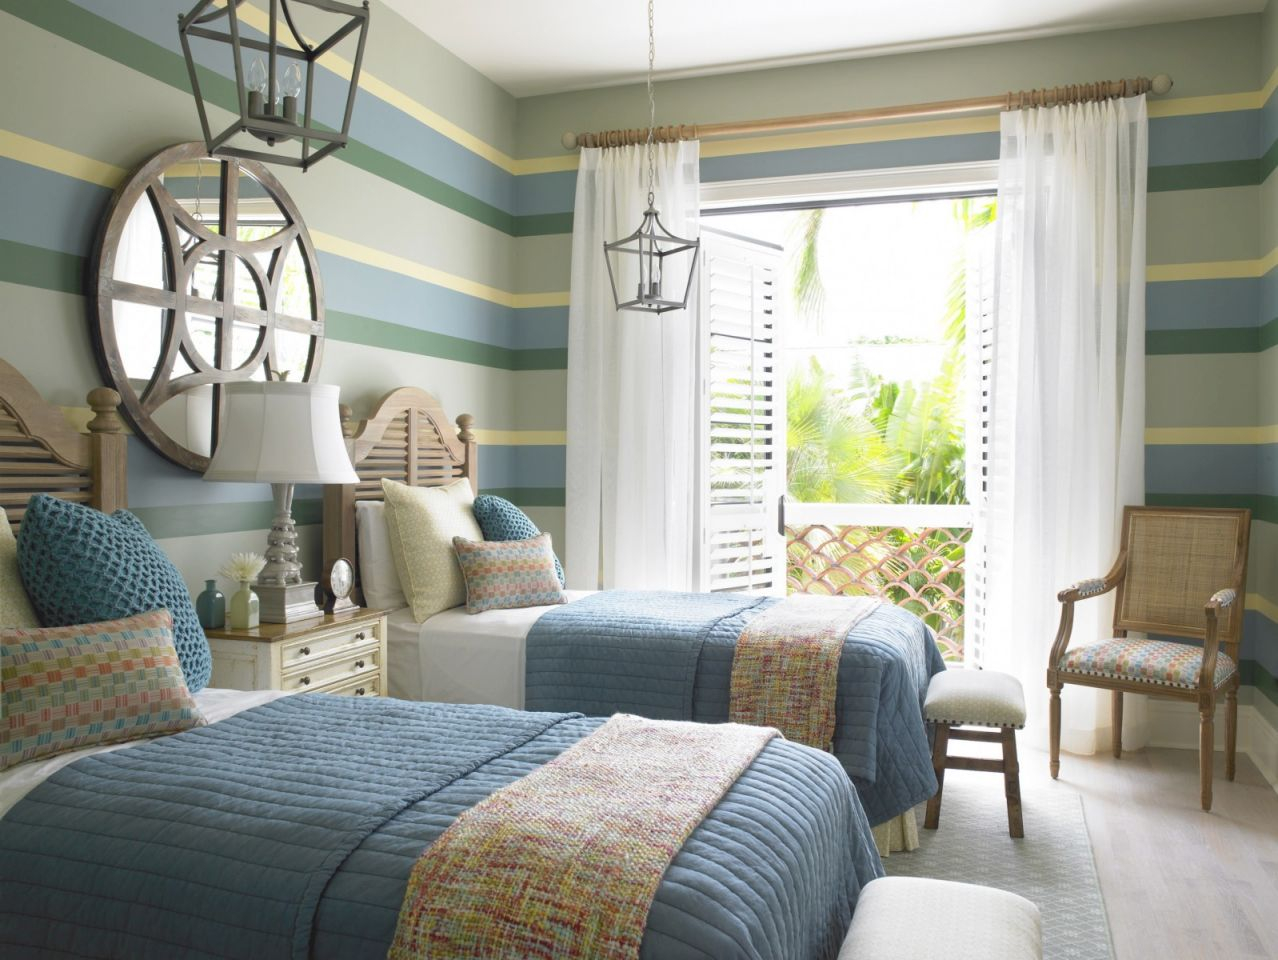 The Serenity Of The Coastal Bedroom intended for Luxury Seaside Bedroom Decorating Ideas